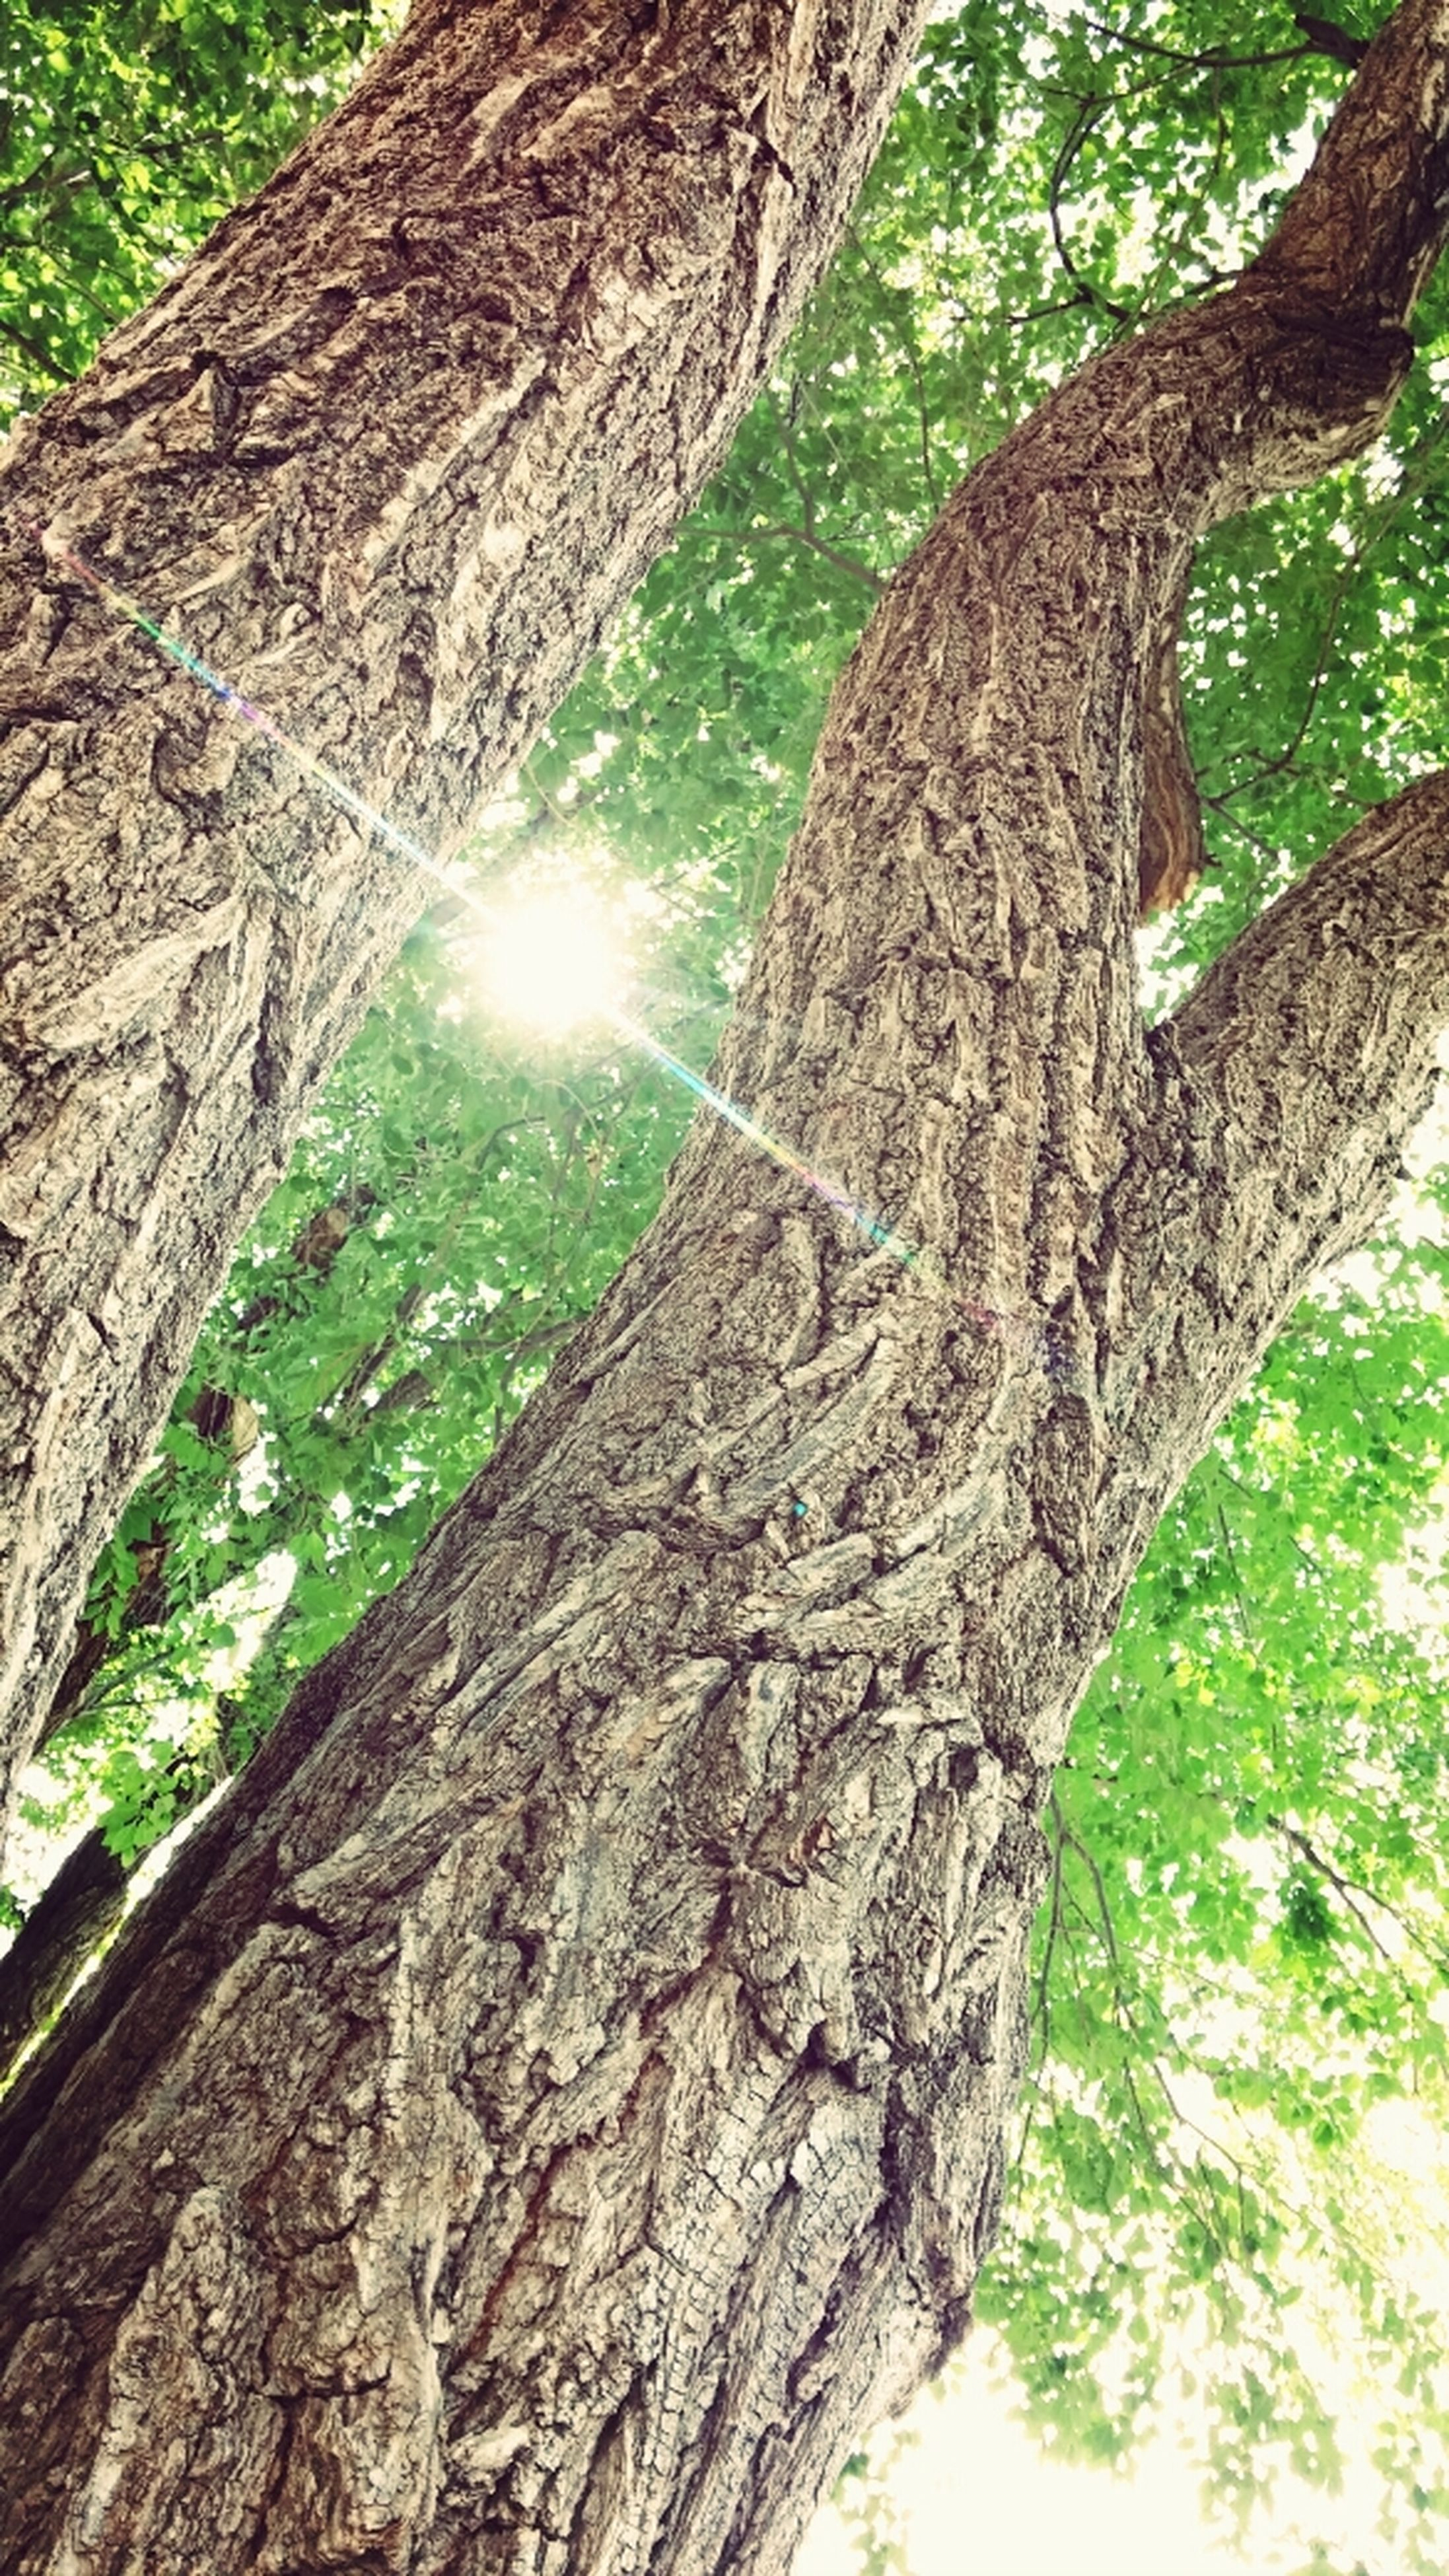 tree, tree trunk, growth, forest, nature, tranquility, low angle view, bark, textured, branch, beauty in nature, woodland, sunlight, green color, wood - material, tranquil scene, outdoors, day, scenics, rough